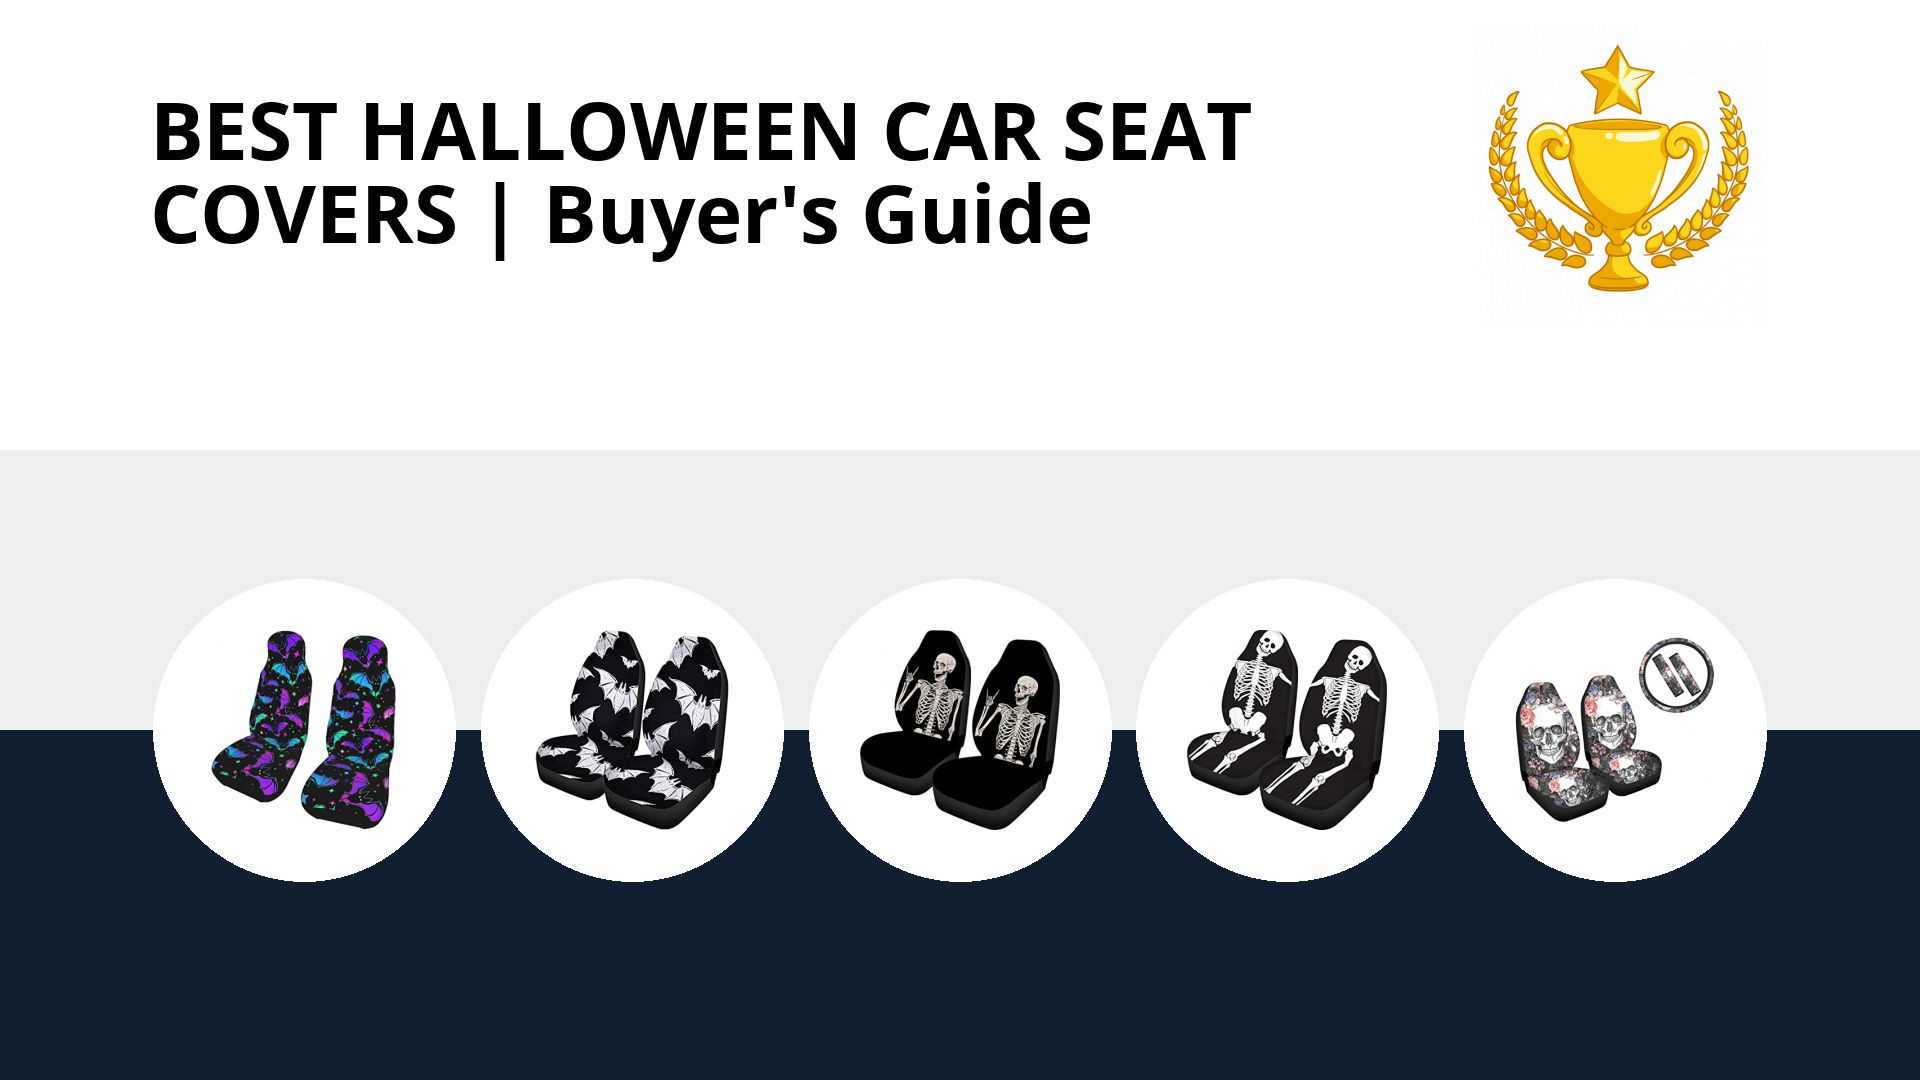 Best Halloween Car Seat Covers: image